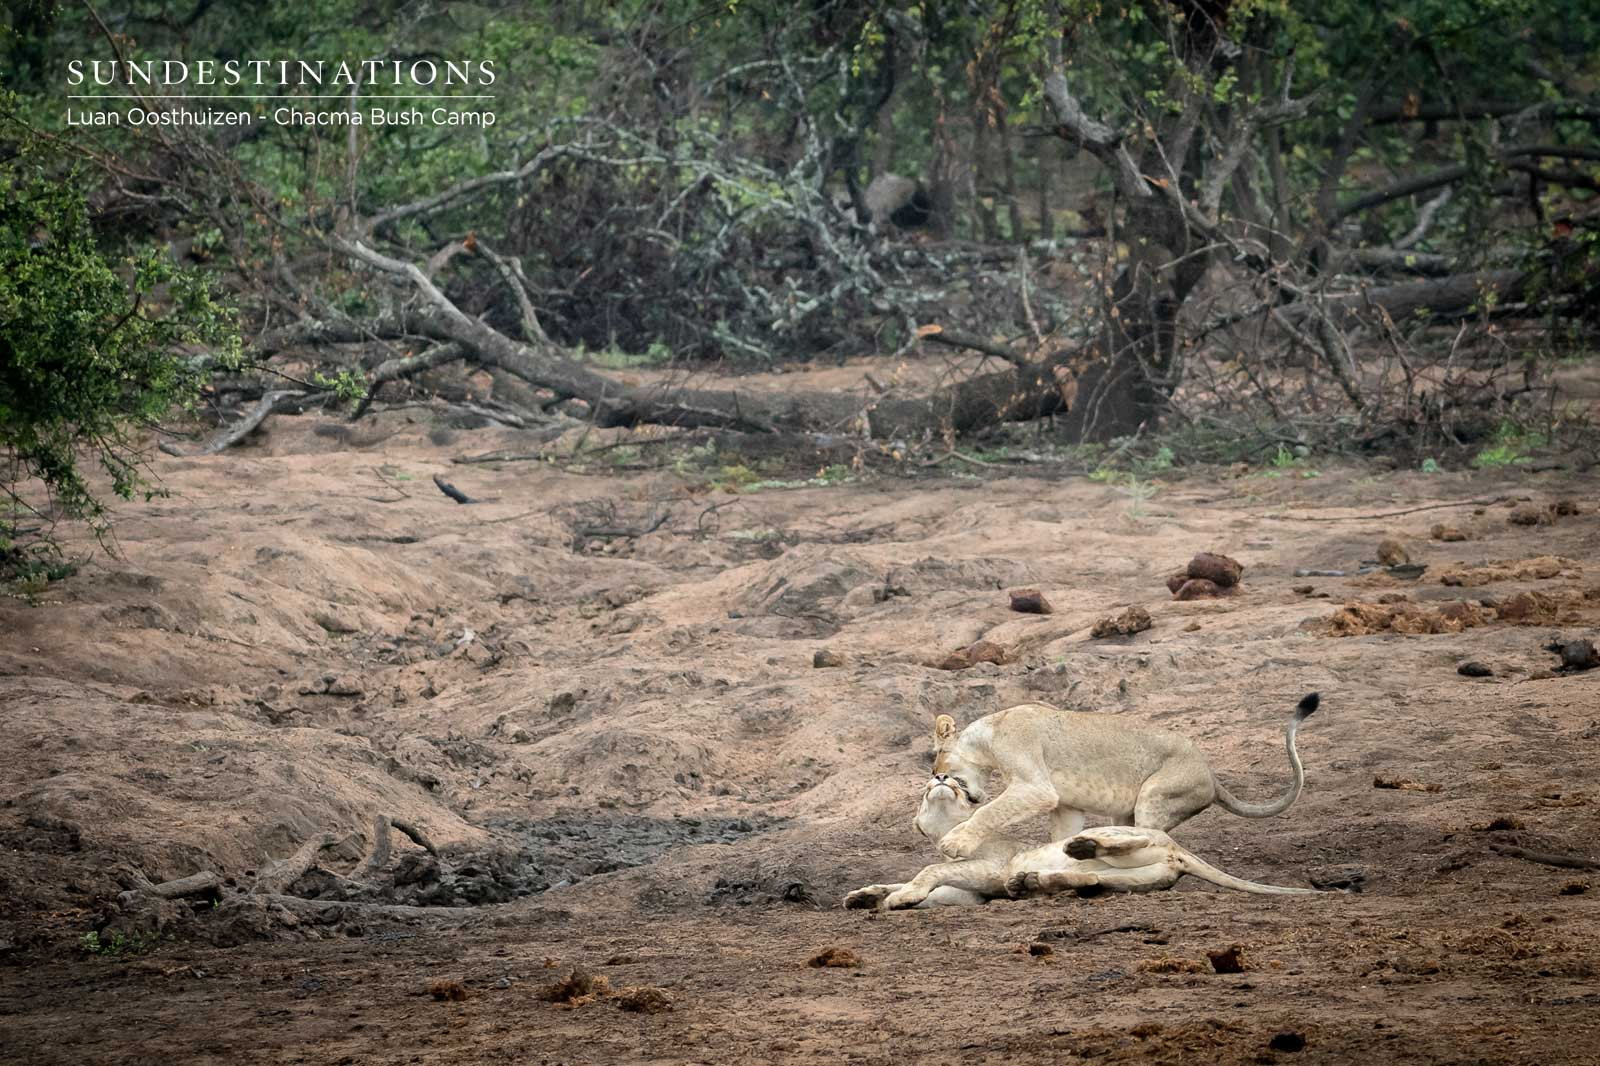 Chacma Lions Play with Owl